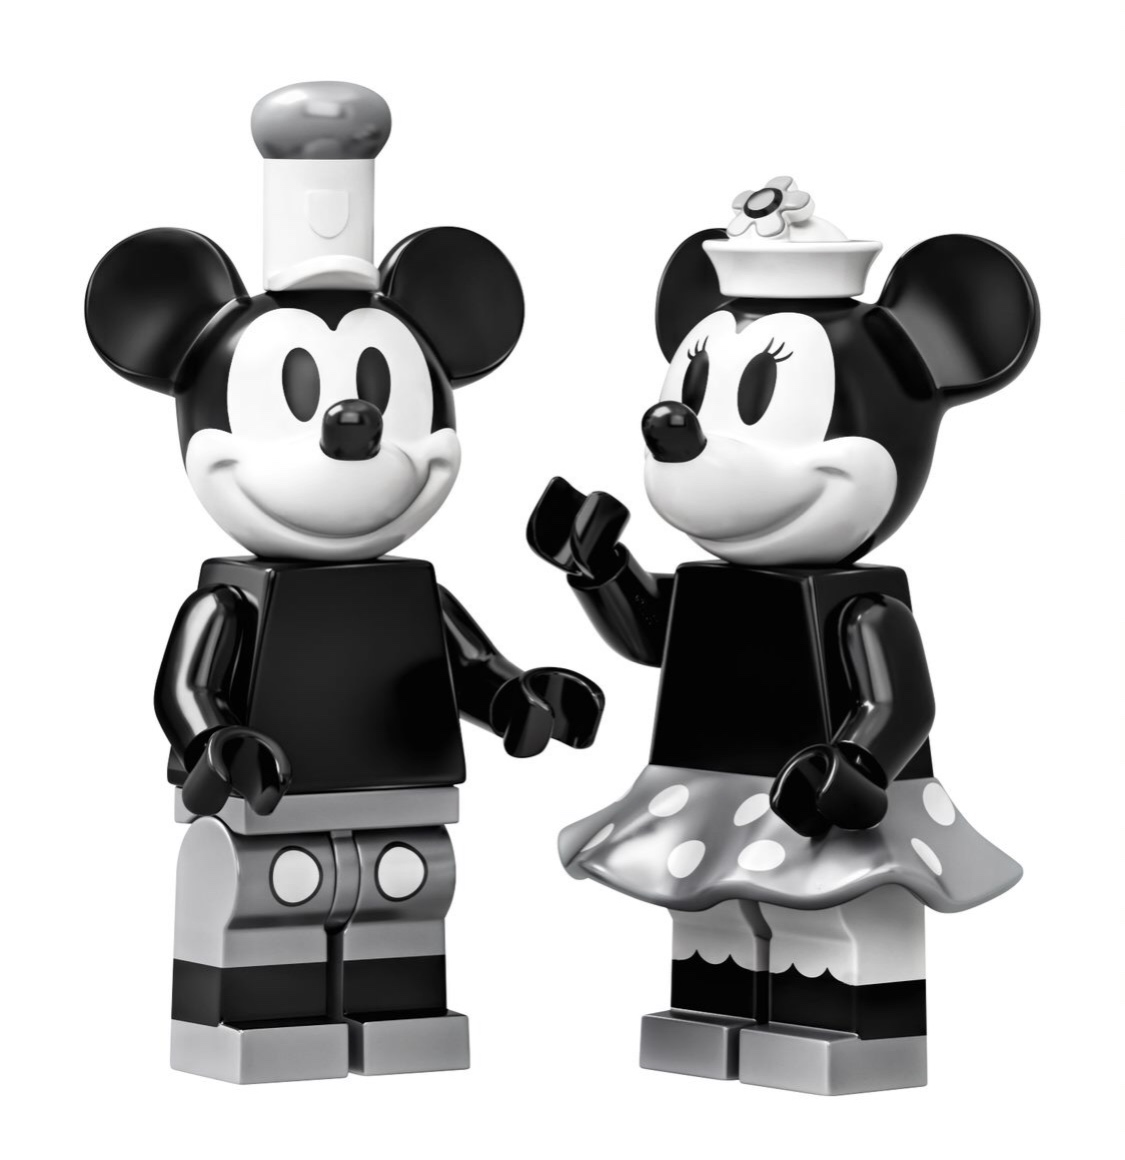 LEGO Steamboat Willie Set Reveal! Details Below! 6